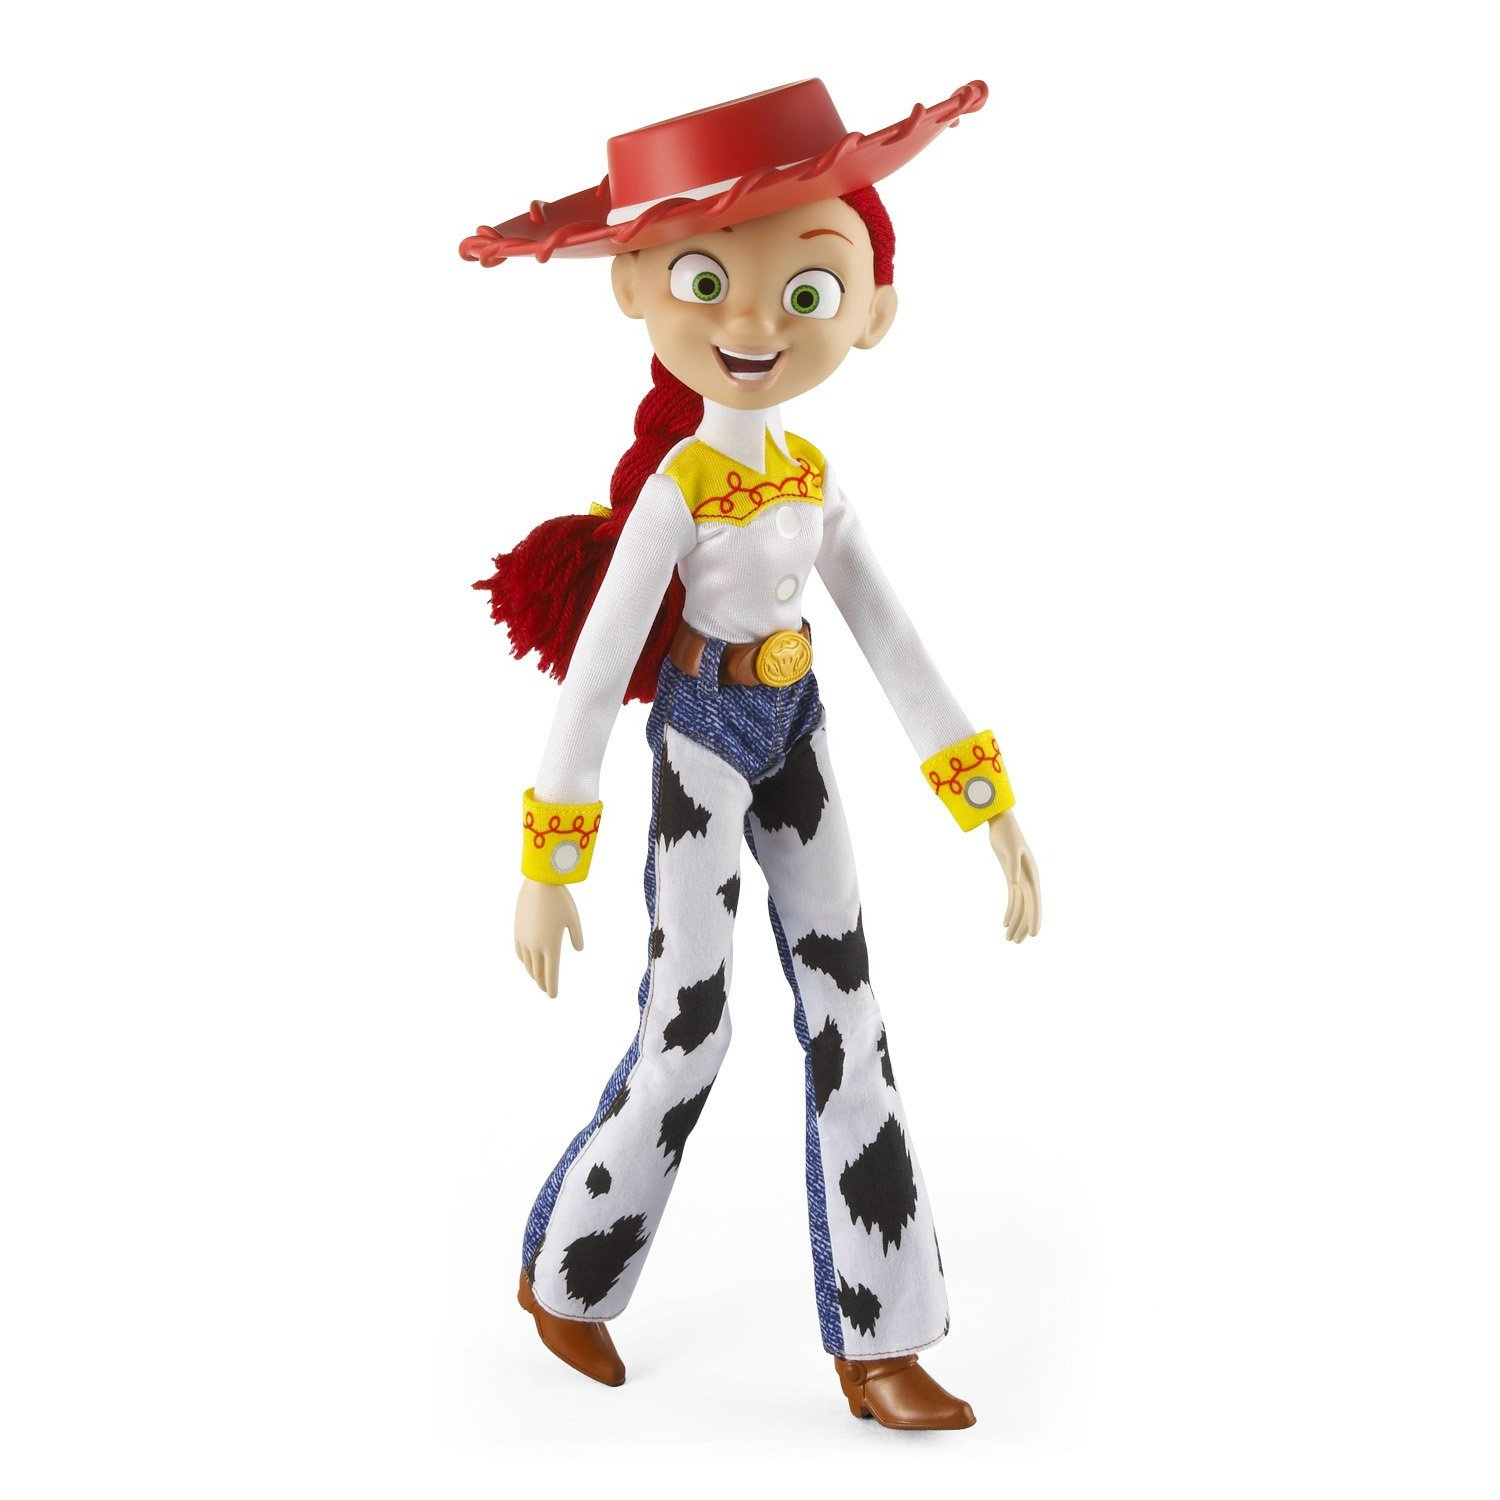 Erikau0026#39;s Chiquis Halloween Costumes Toy Storyu0026#39;s Woody And Jessie Part 1